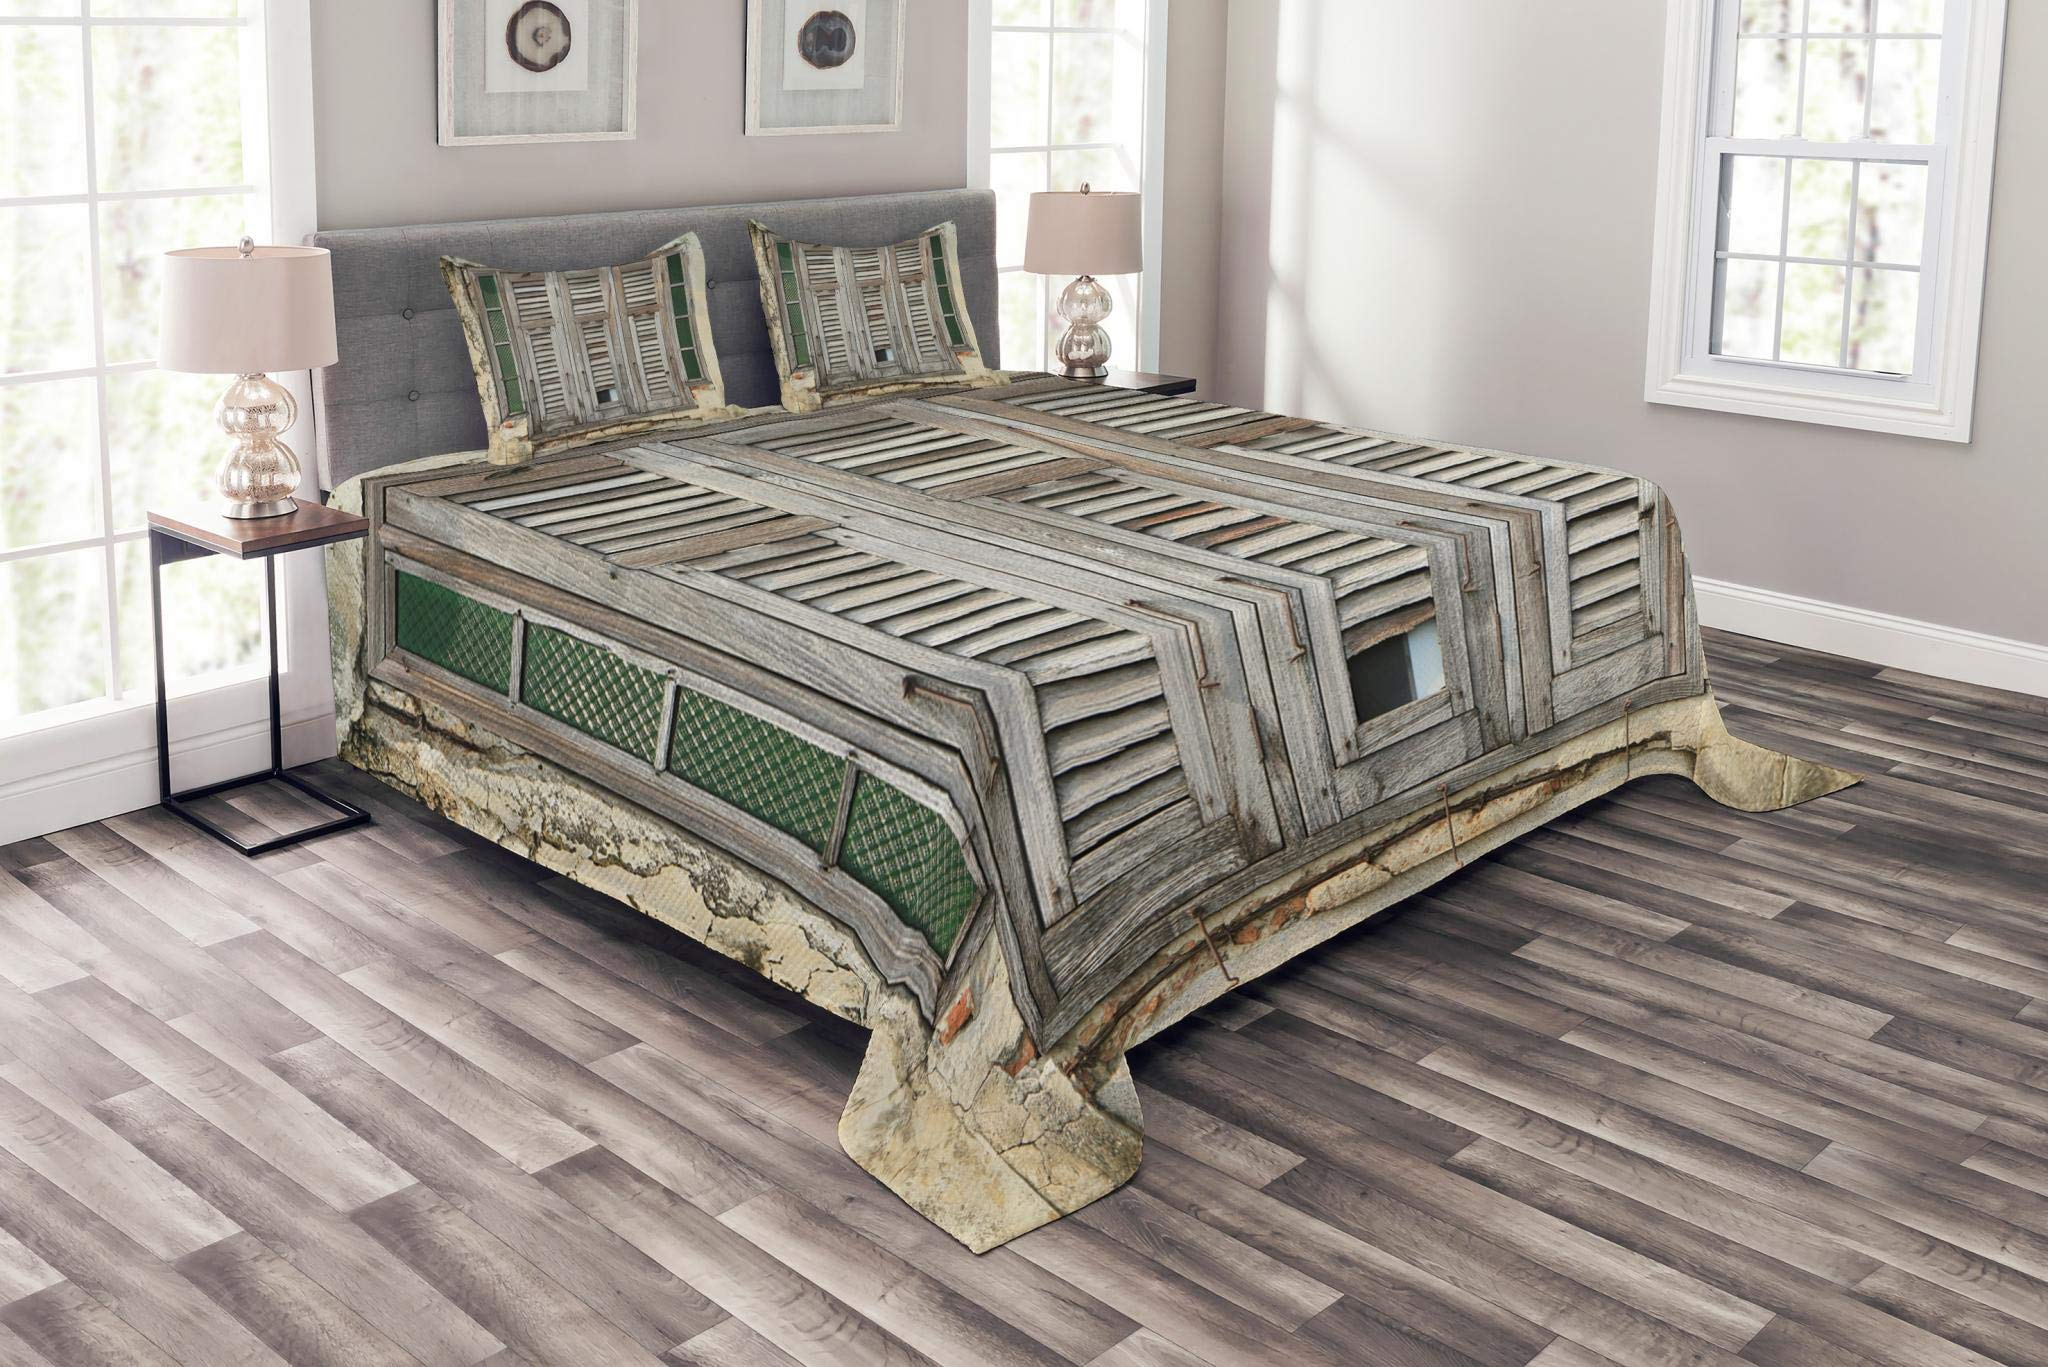 Lunarable Shutters Bedspread Set Queen Size, Aged Weathered Wooden Window Blinds Rough Cracked Wall in Vintage Rustic Style, Decorative Quilted 3 Piece Coverlet Set with 2 Pillow Shams, Beige Green